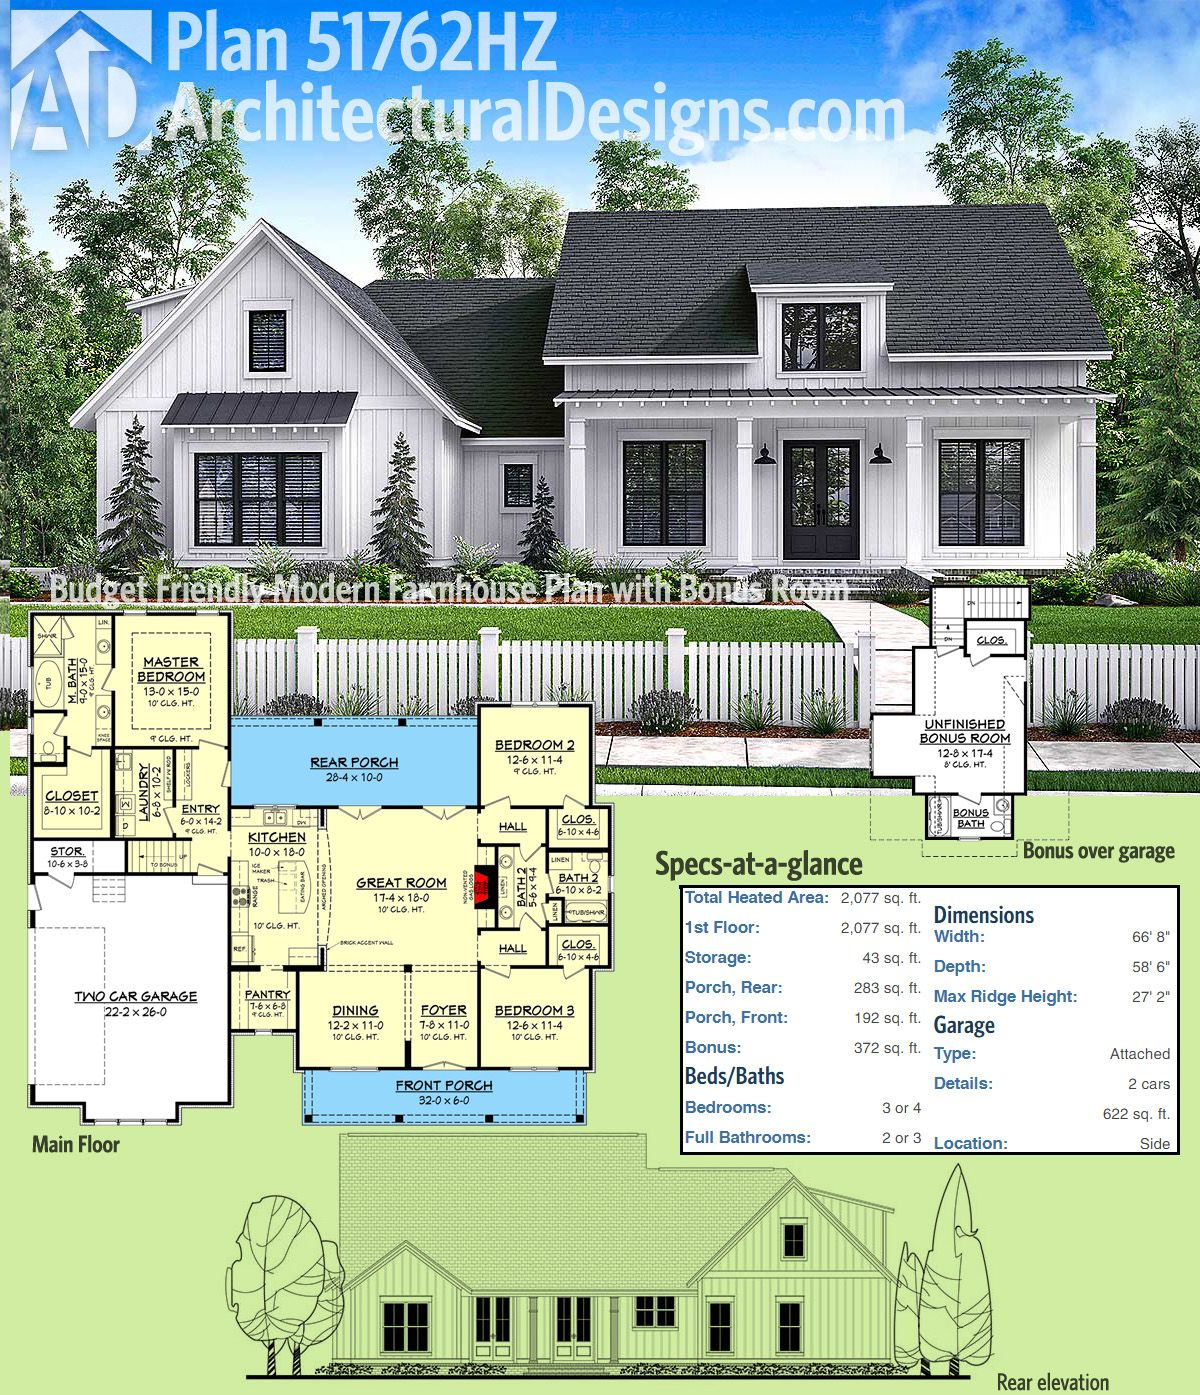 Plan 51762HZ: Budget Friendly Modern Farmhouse Plan With